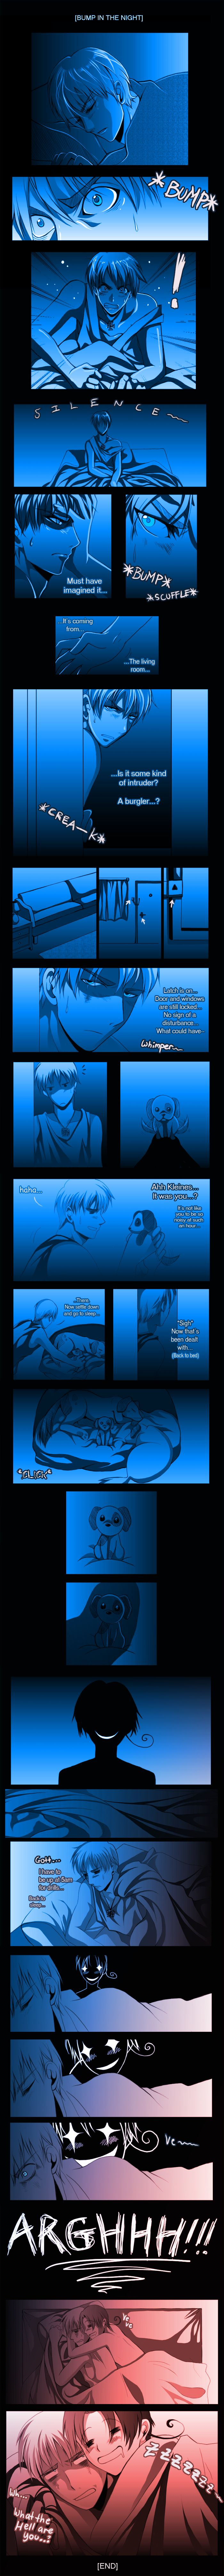 APH - Bump in the Night by R-ninja.deviantart.com on @deviantART DA, BUMP, BUMP BUMP, BUMP DA DA DA DA DA DA ITALY!